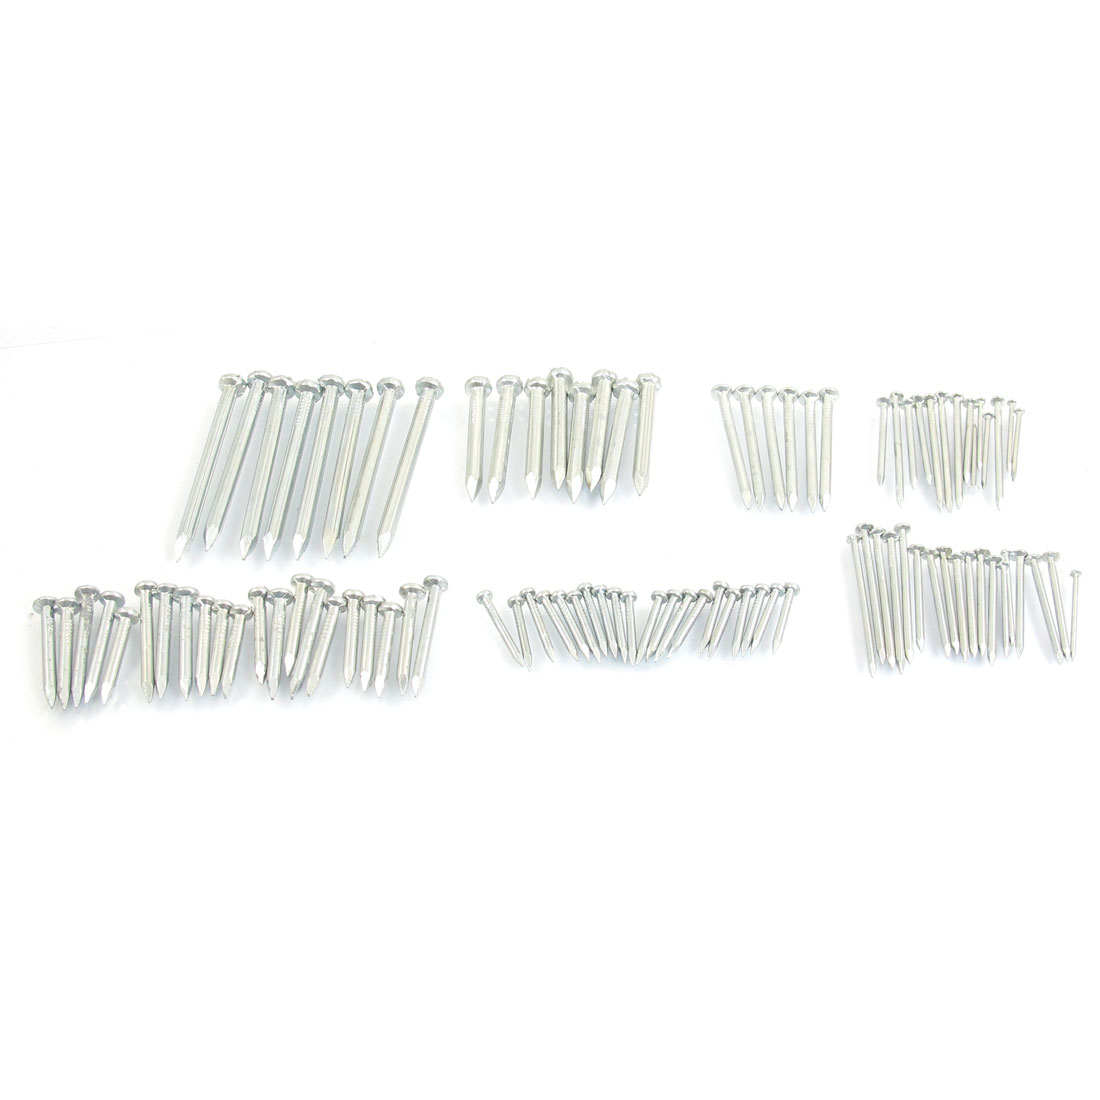 95 Pcs Hardware Part 10 Sizes Metal Wire Nails Fitting Set